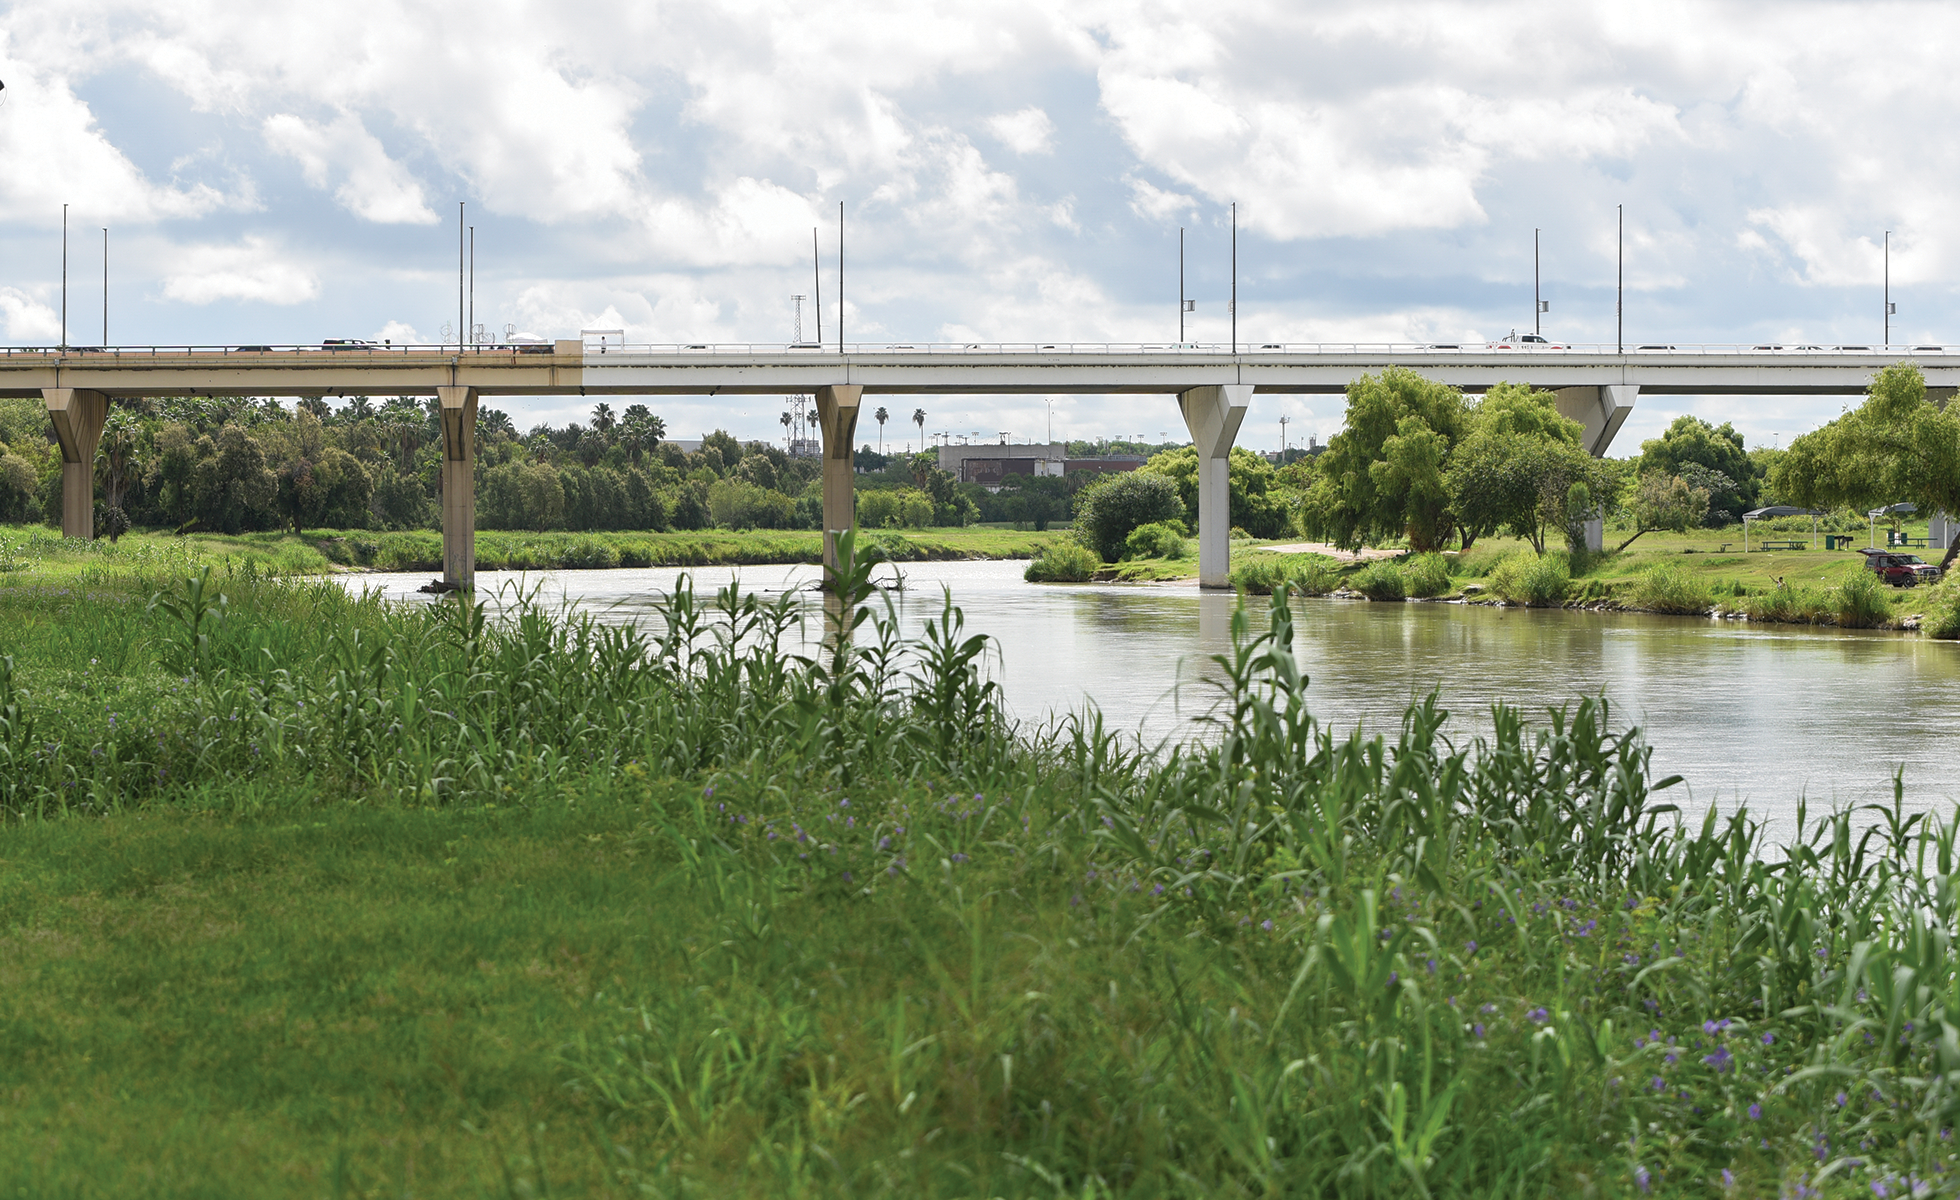 A view of Juárez-Lincoln International Bridge connecting the United States to Mexico over the Rio Grande in Laredo.